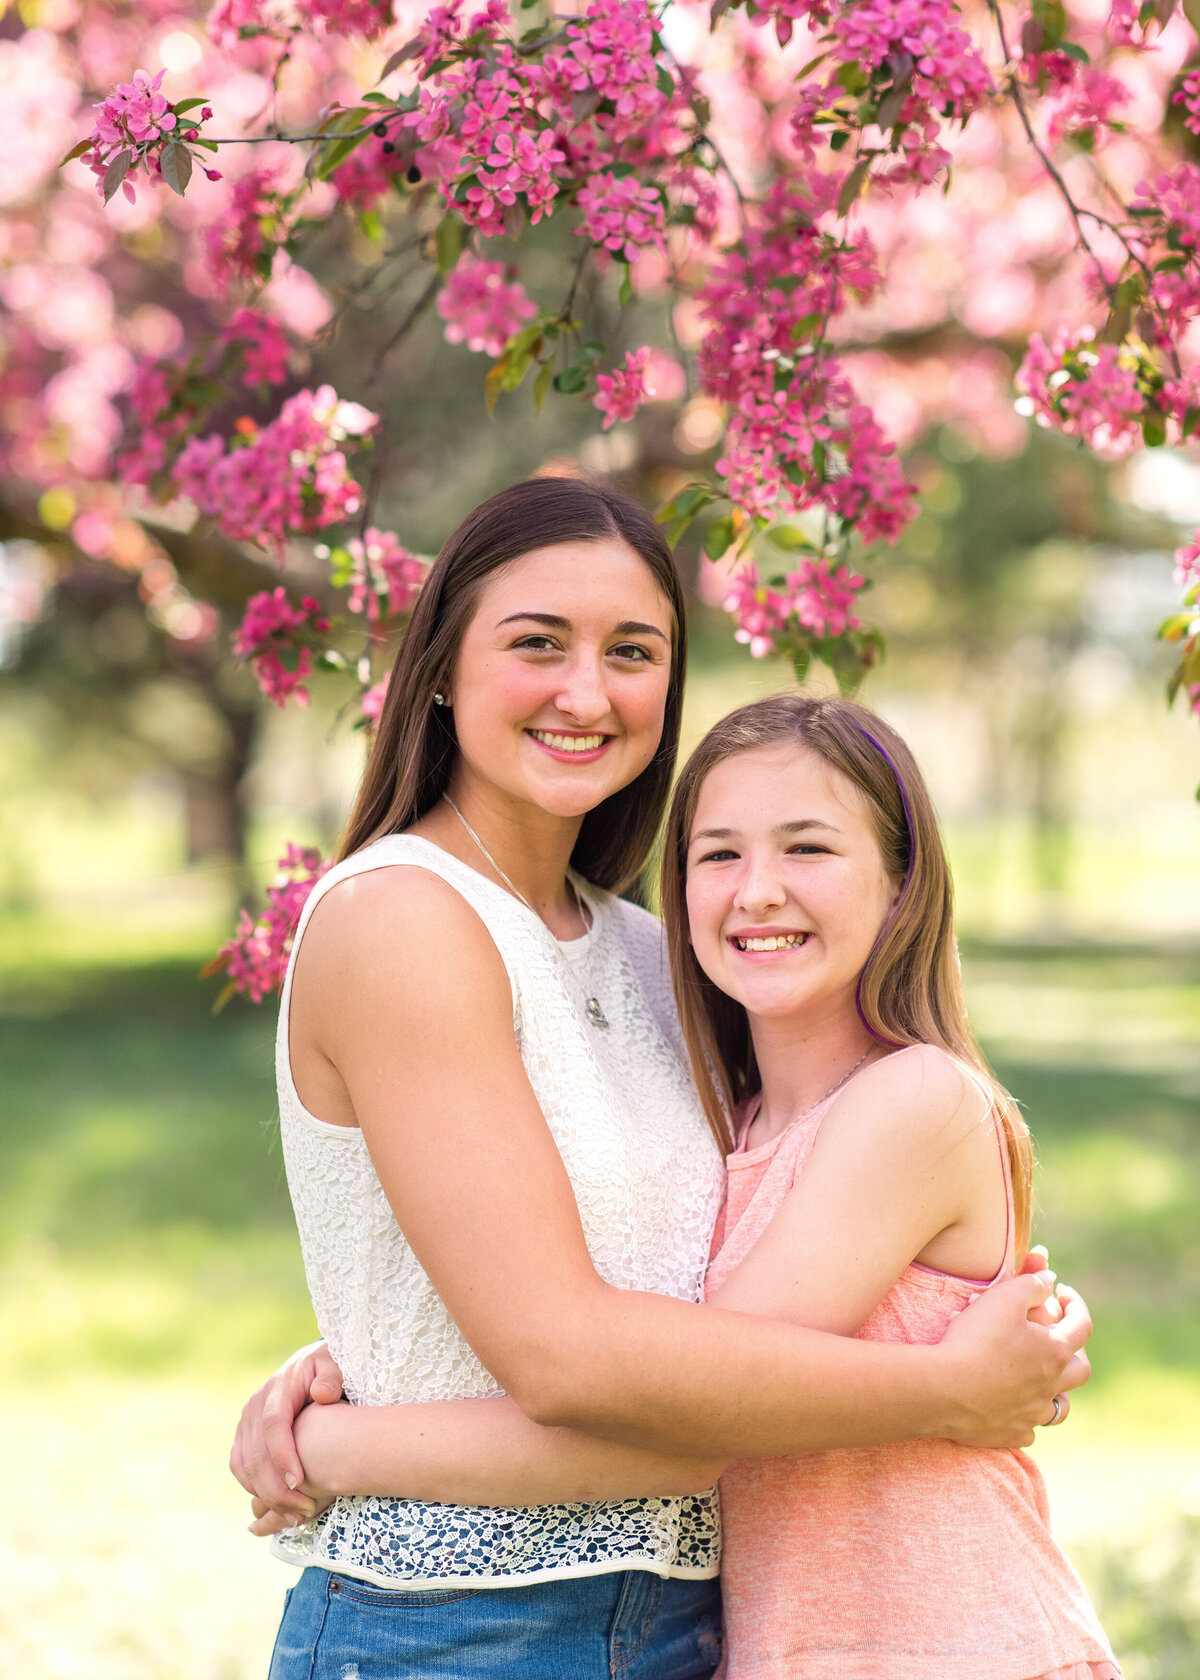 Des-Moines-Iowa-Family-Photographer-Theresa-Schumacher-Photography-Spring-Sisters